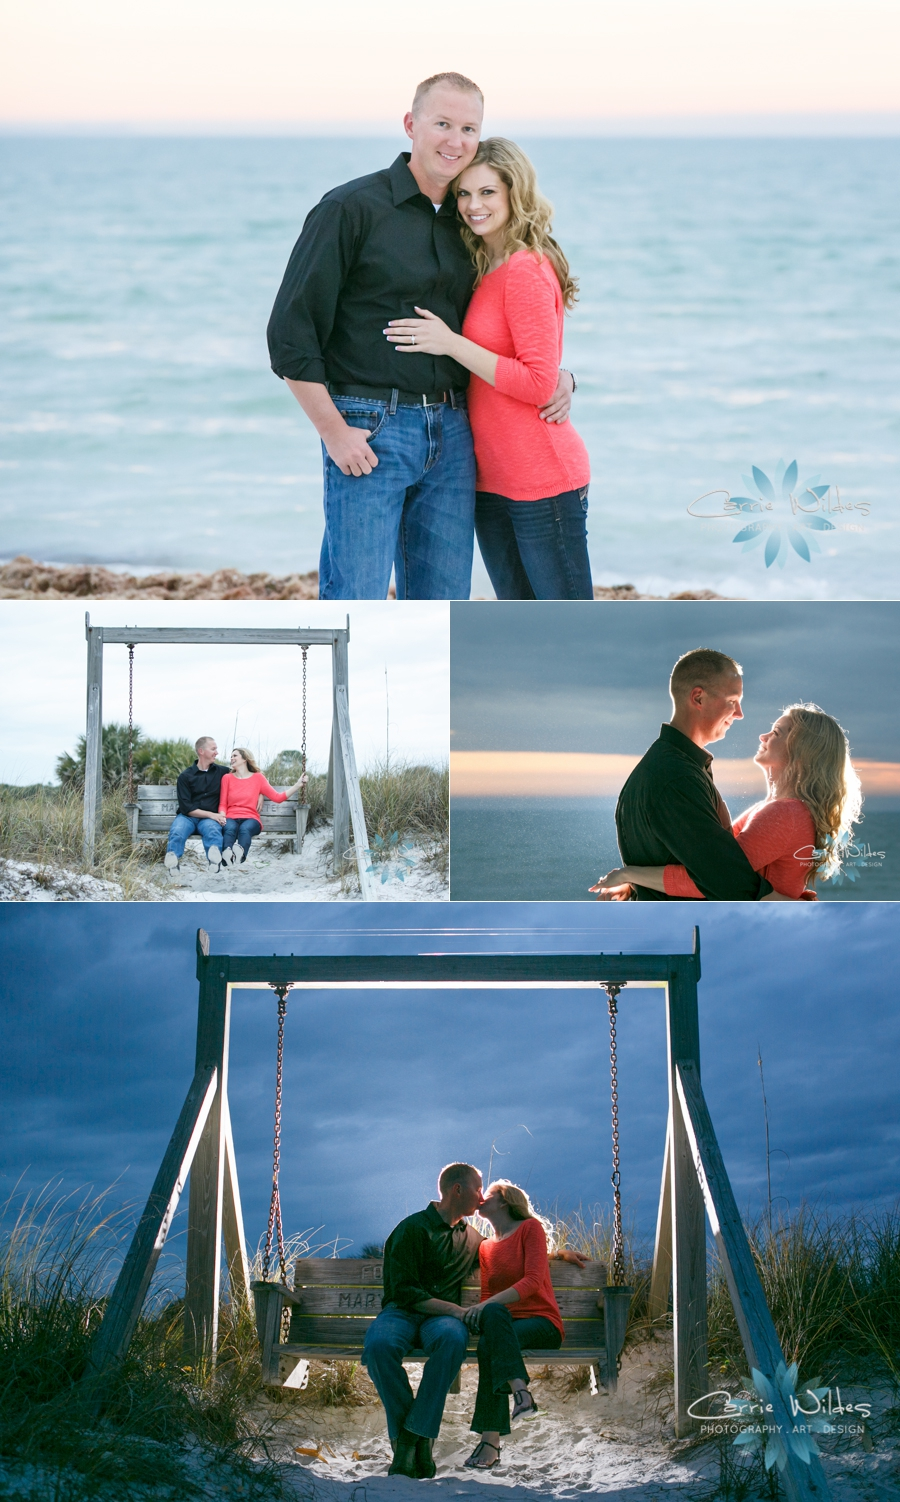 1_28_14 Honeymoon Island Engagement_0004.jpg